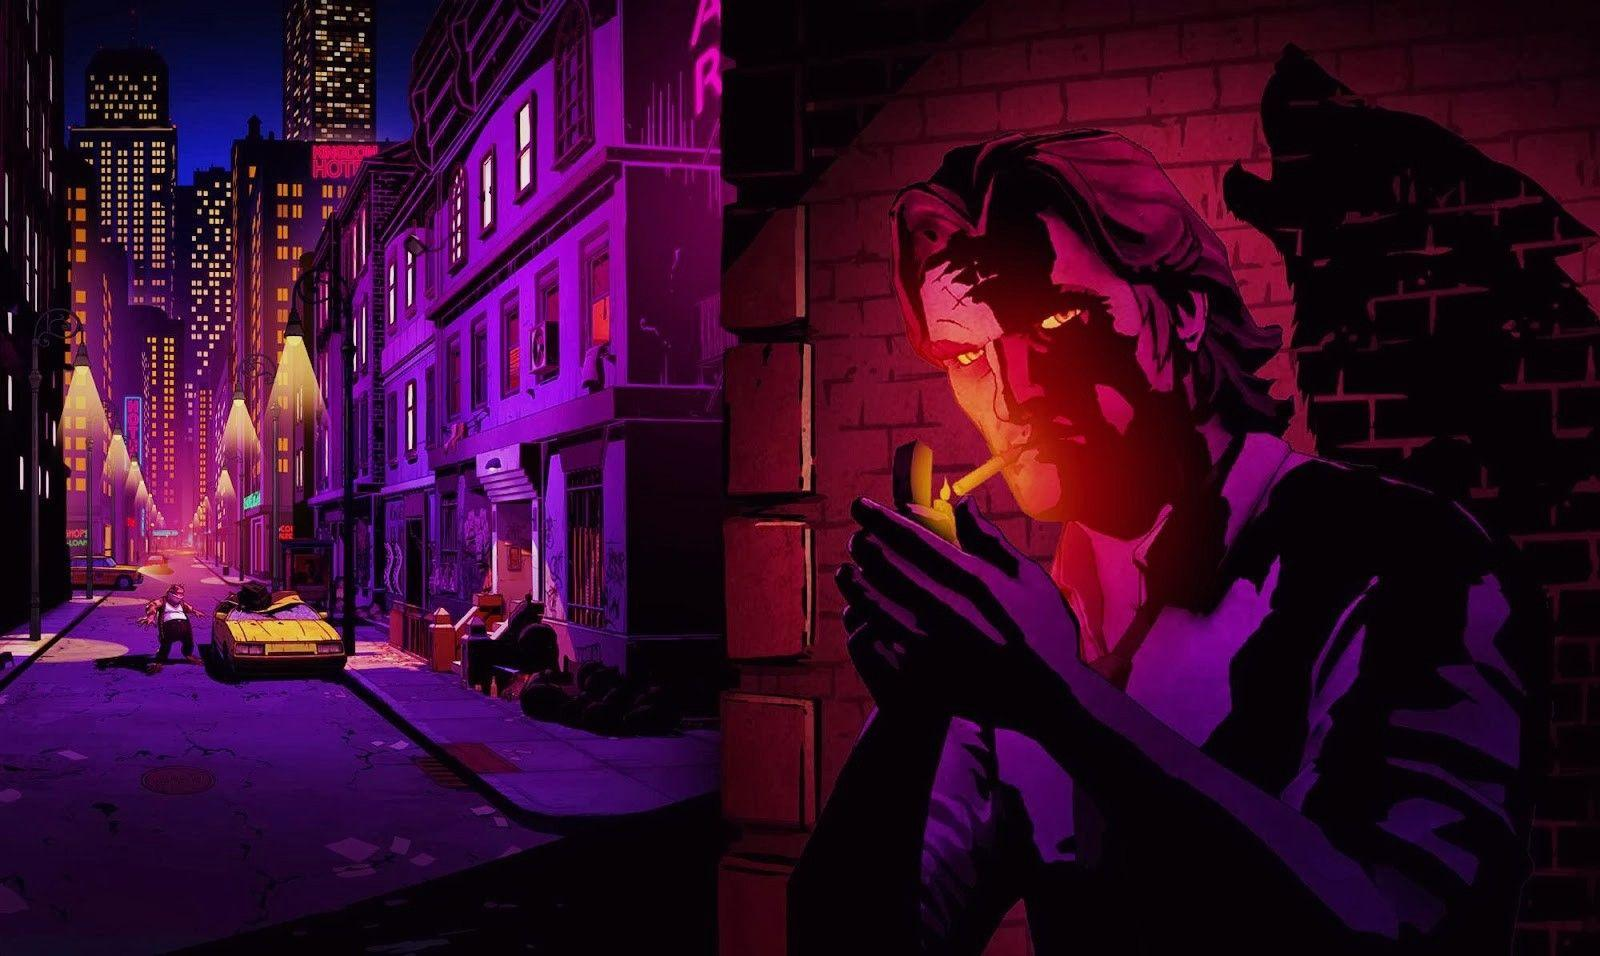 The Wolf Among Us Wallpapers, 40 The Wolf Among Us High Resolution